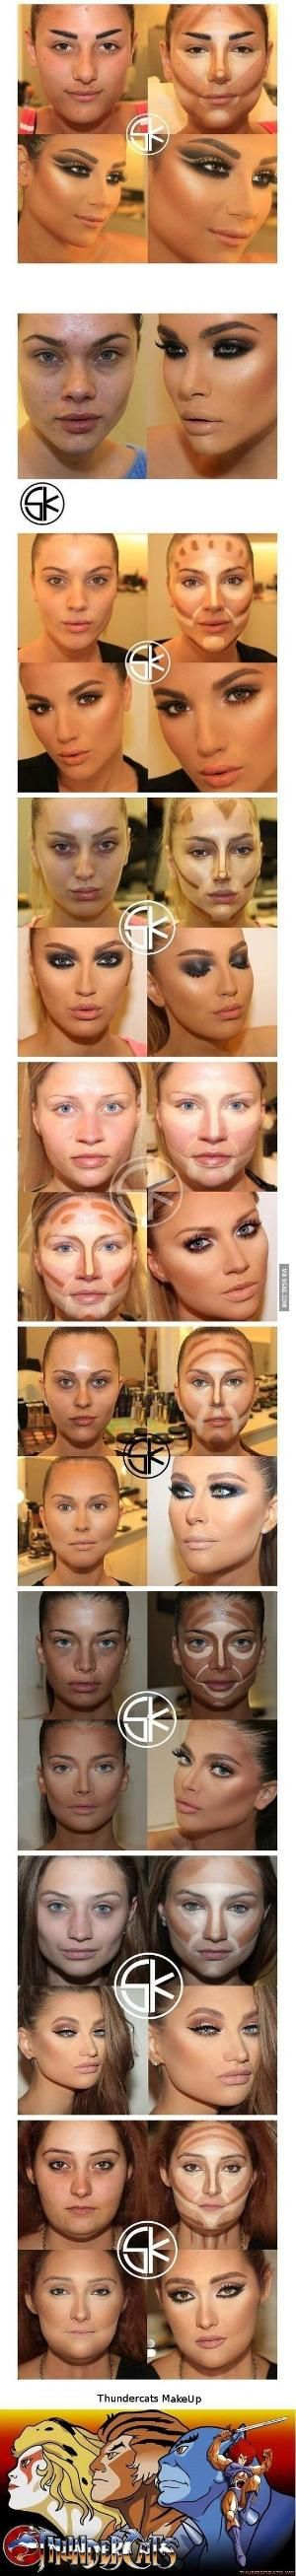 This is actually helpfull makeup tutorial...(just don't go extrem...) If you do, it's nothing but lies, don't forget to take them to the pool. by cara